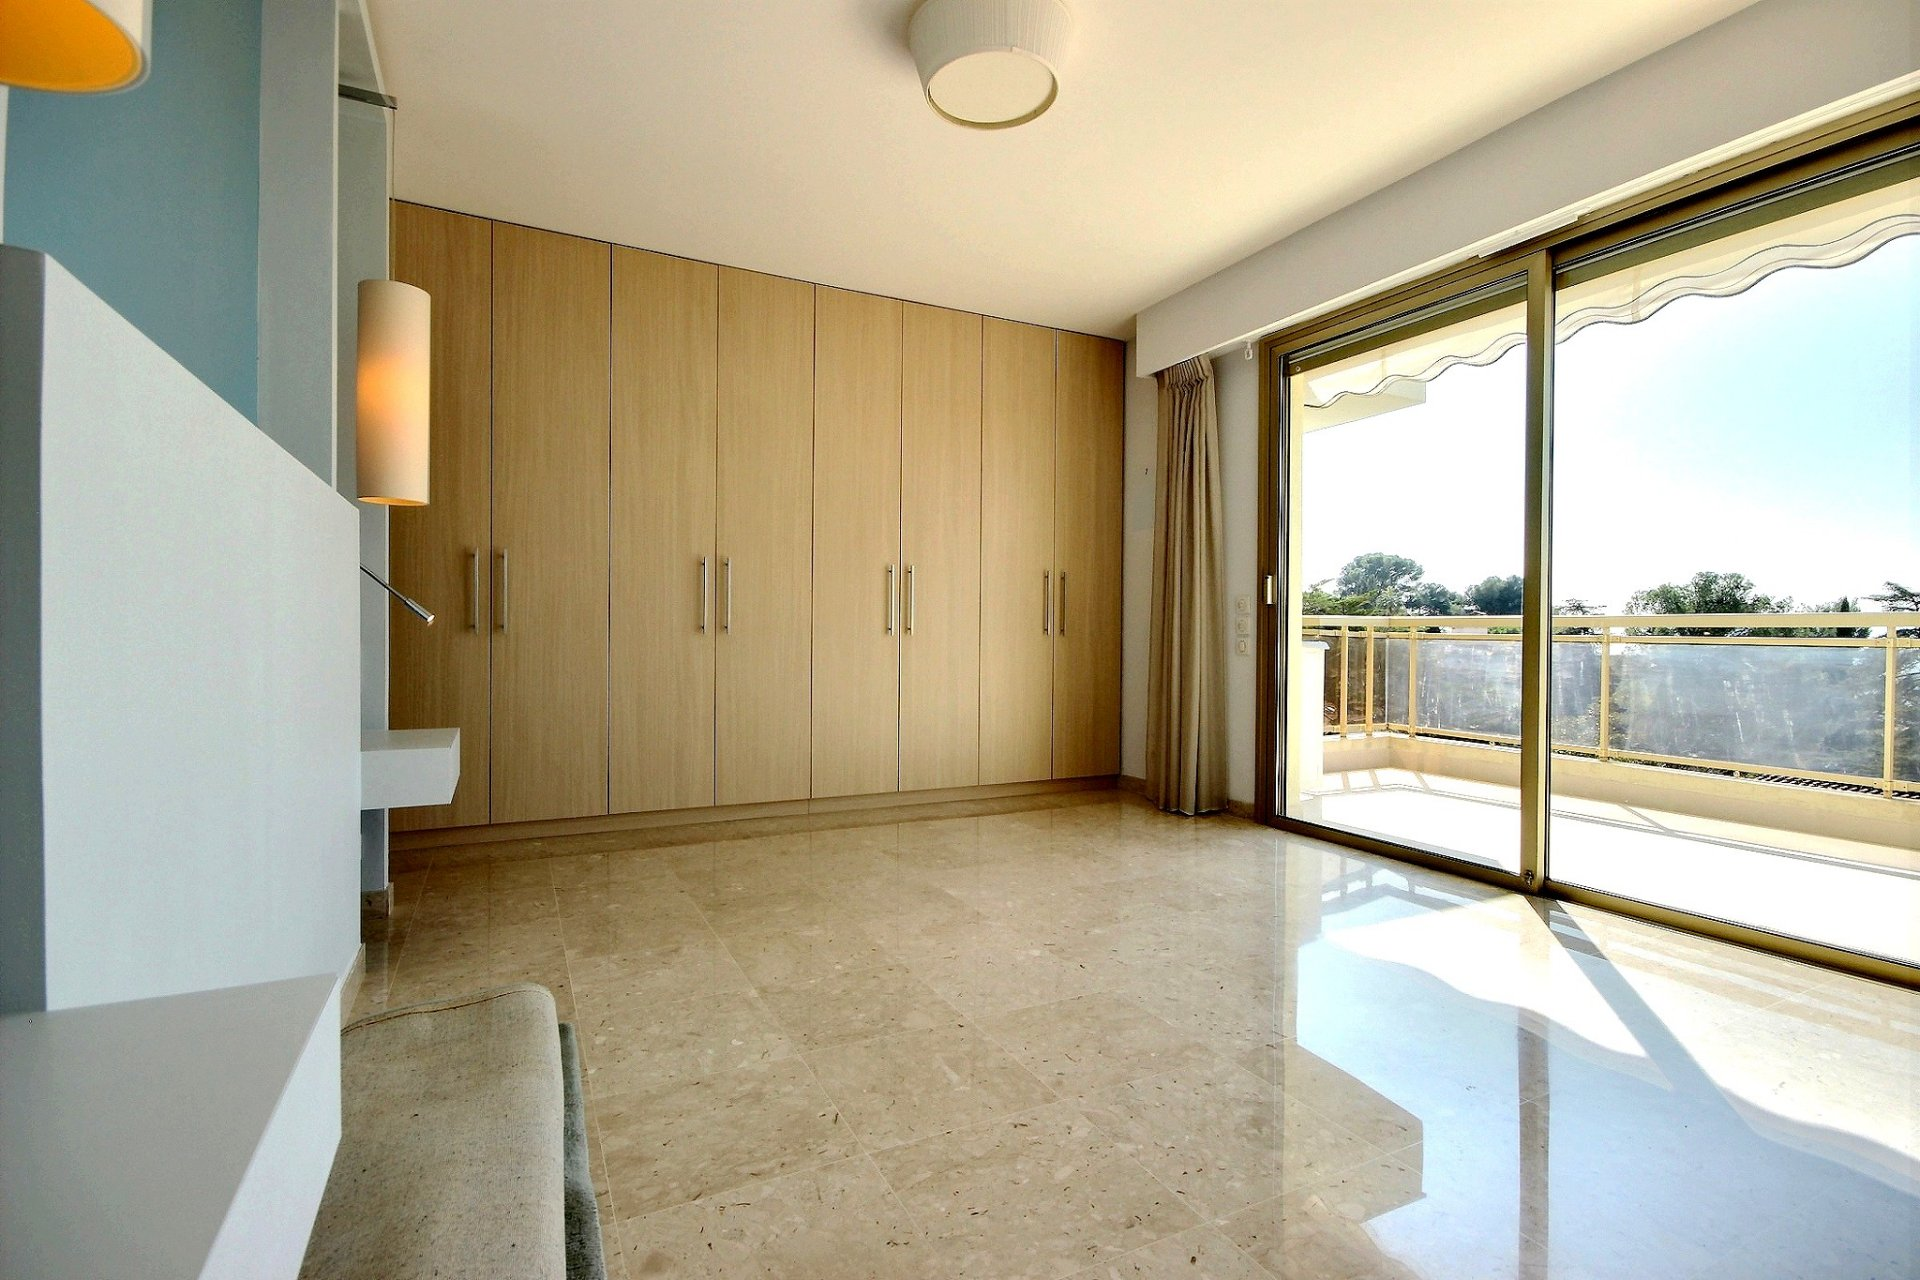 Property for sale in Le Cannet with a spacious terrace